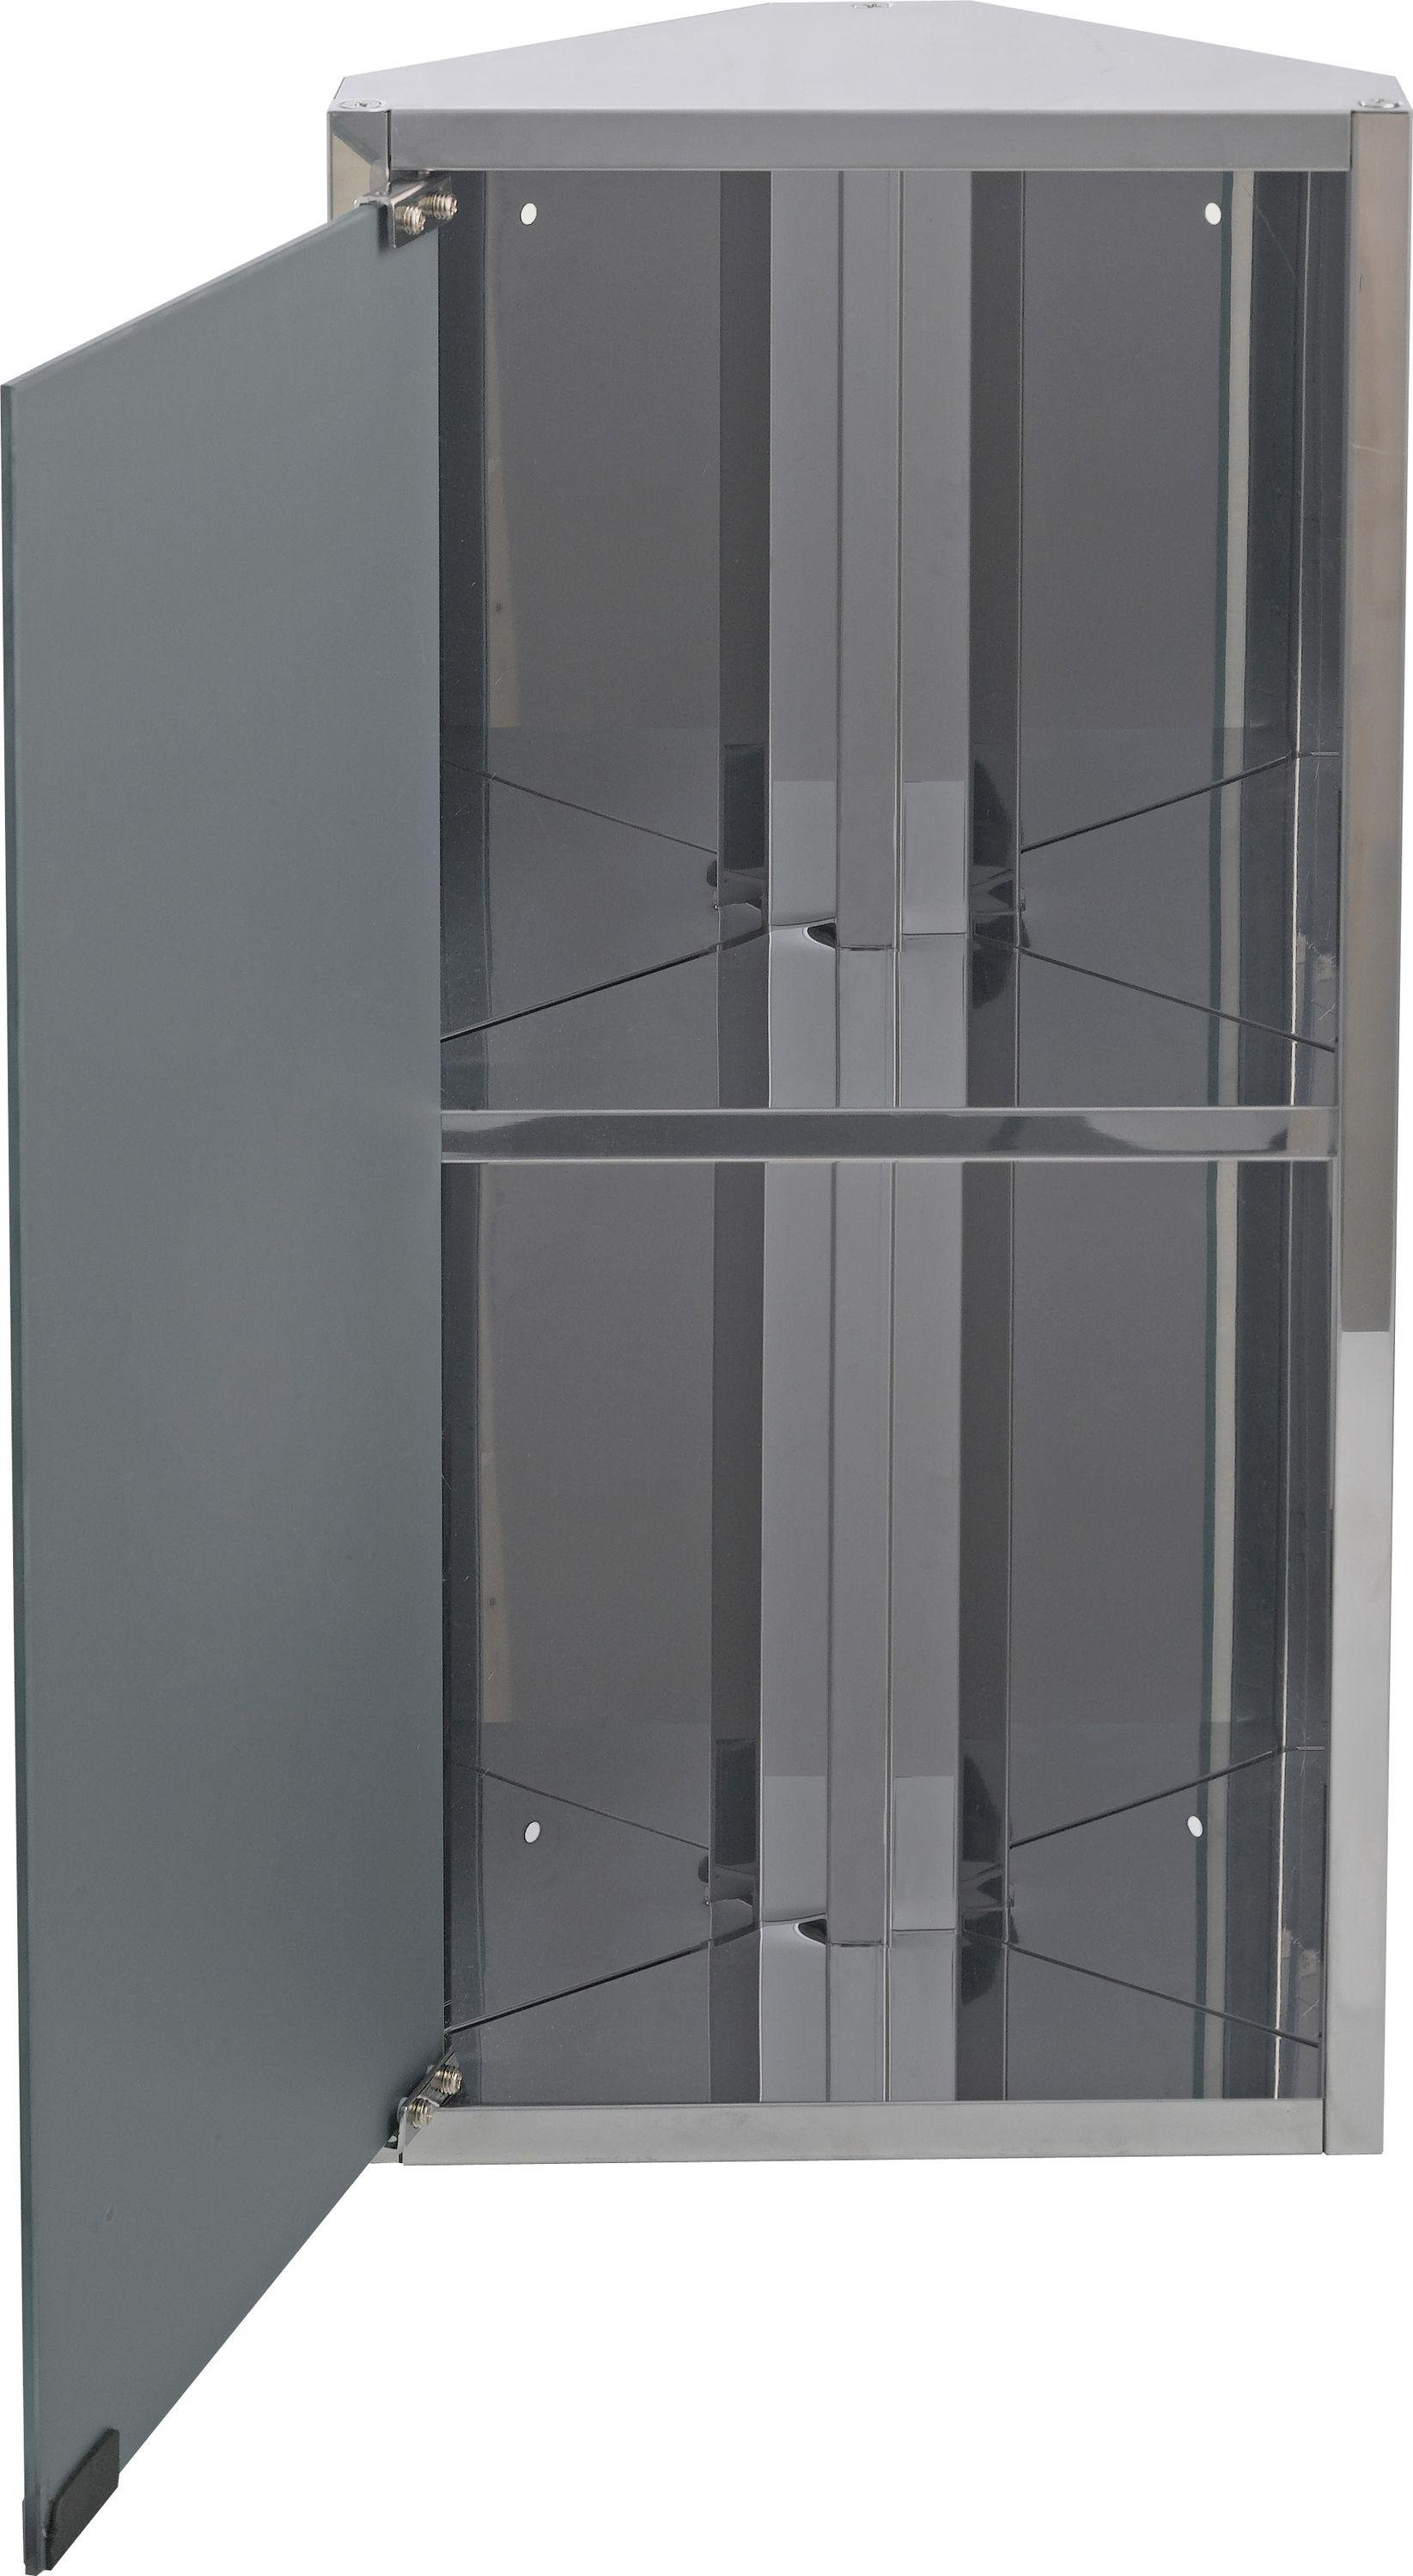 corner mirrored bathroom cabinets buy home mirrored bathroom corner cabinet stainless 17948